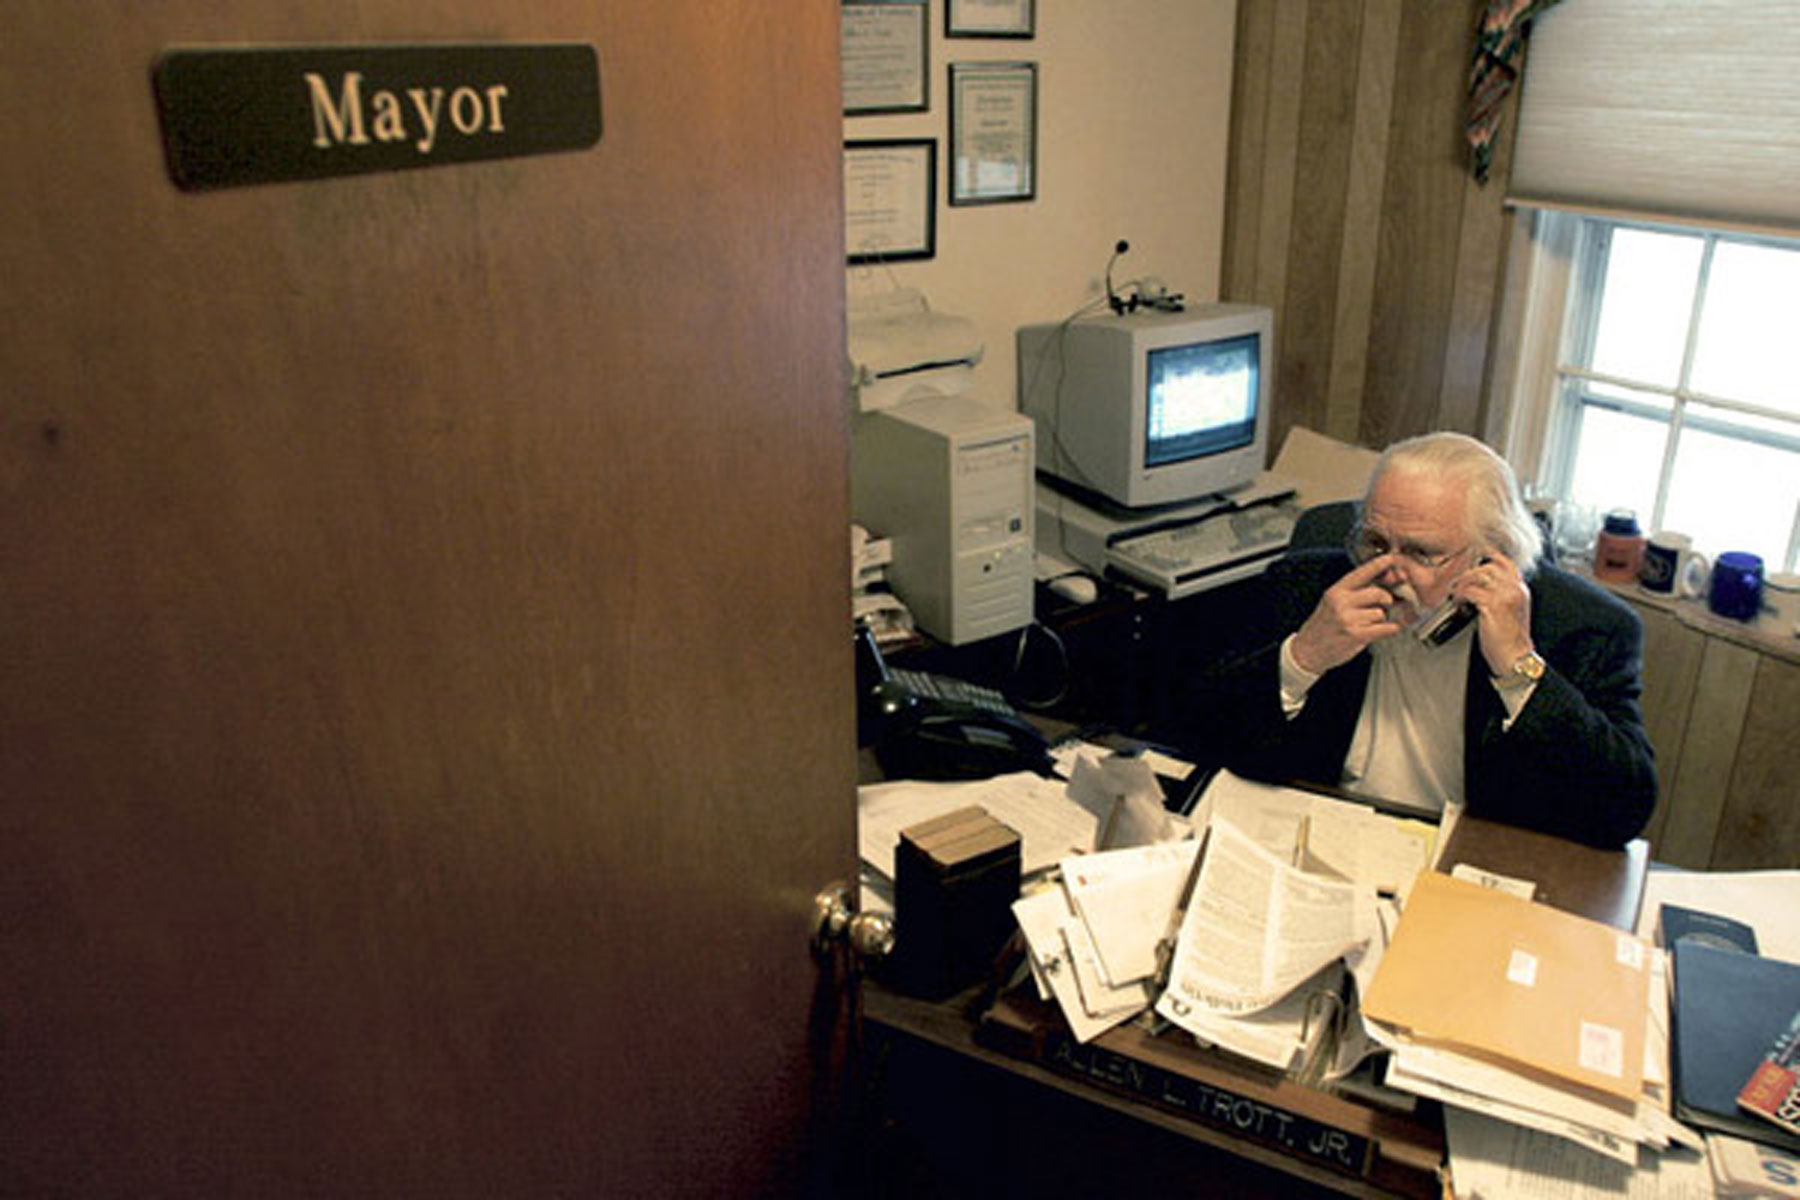 """Man sitting at desk piled with paperwork behind a door that says """"Mayor"""""""